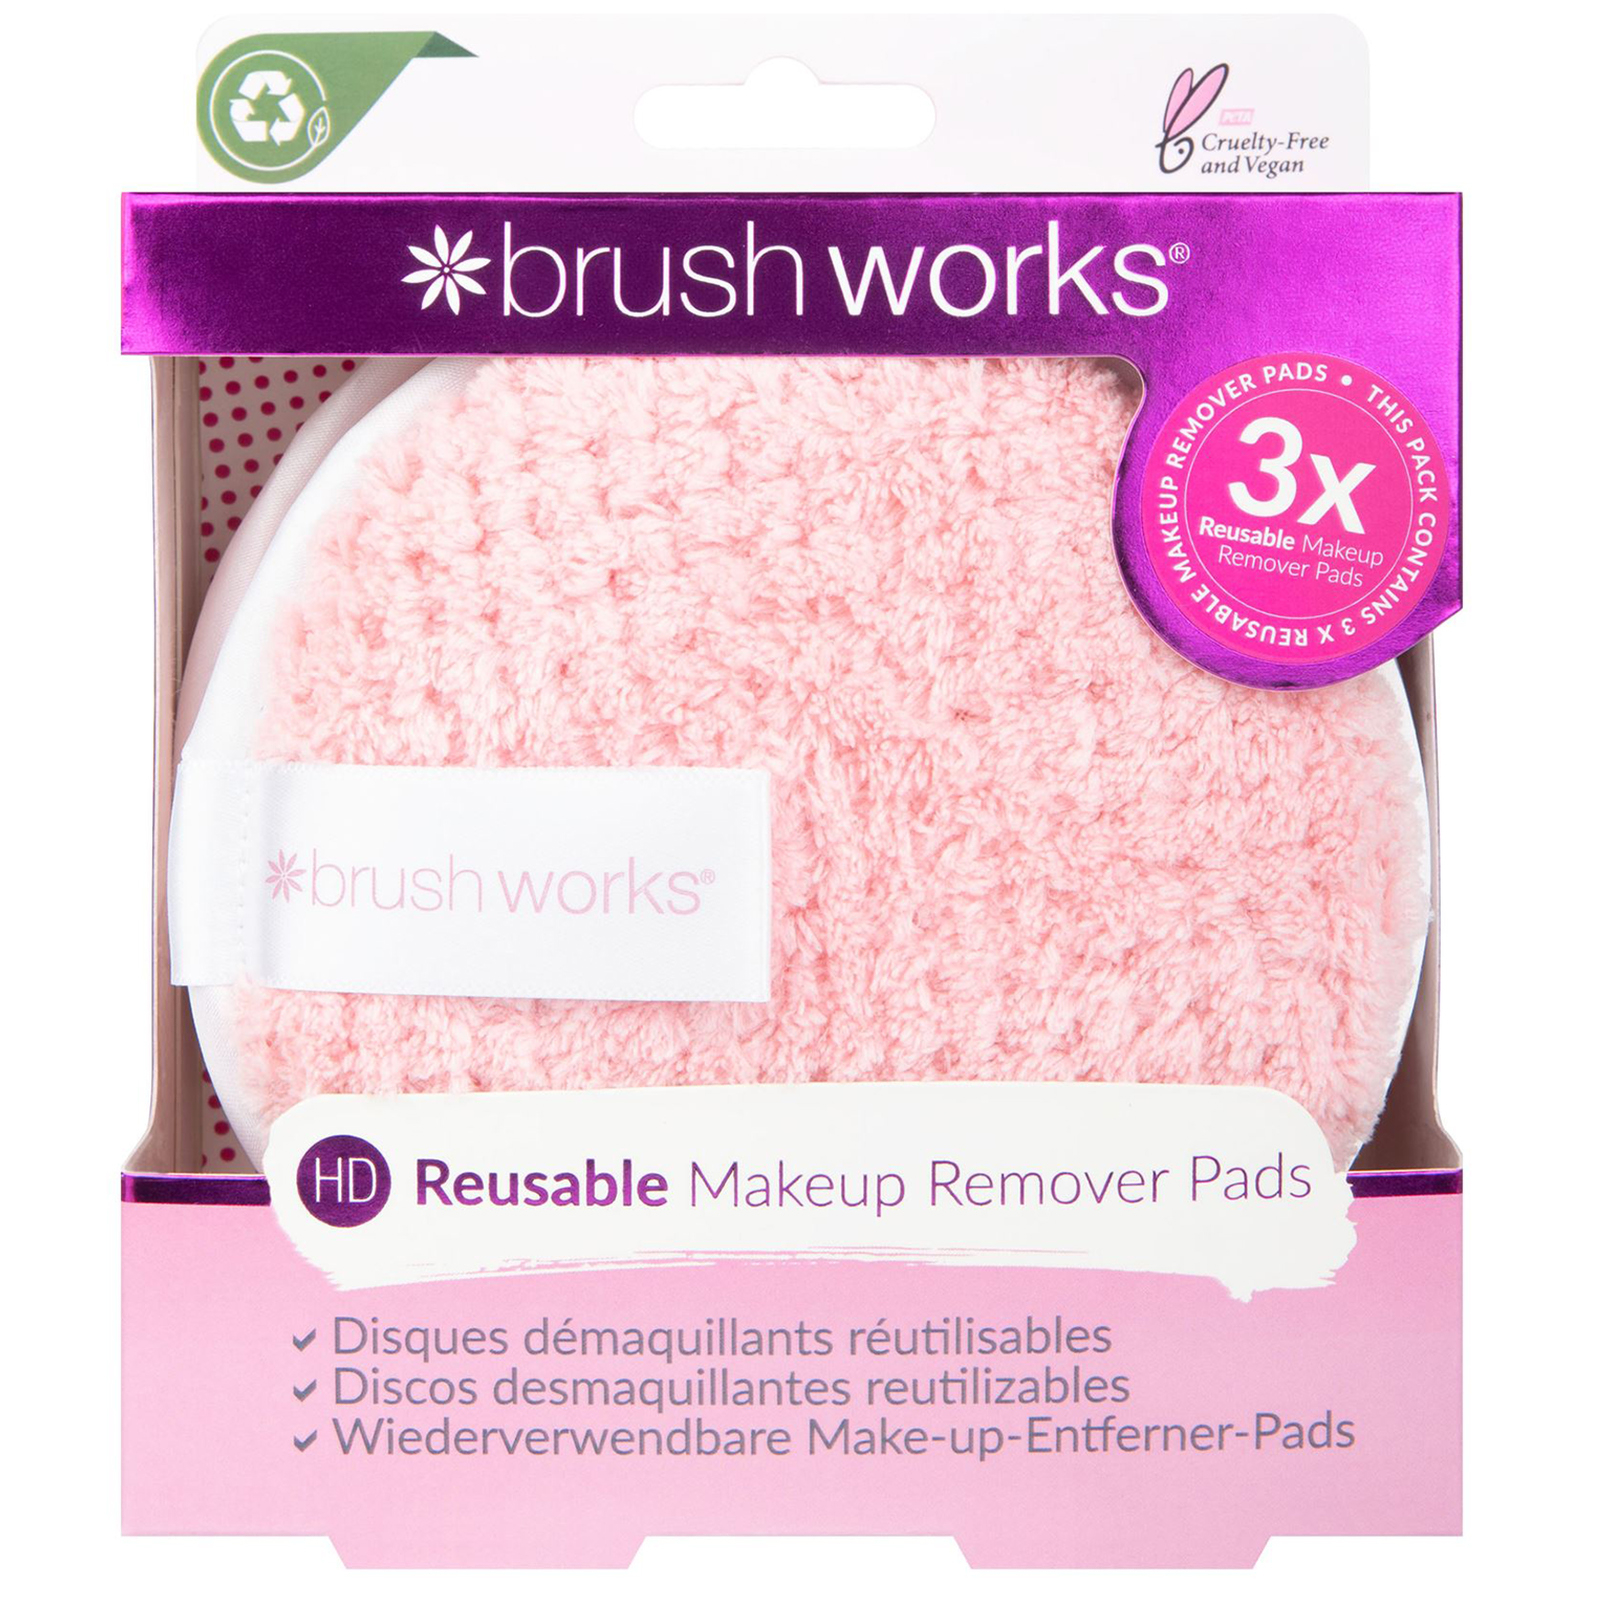 Brushworks Cleansing HD Reusable Makeup Remover Pads (Pack of 3)